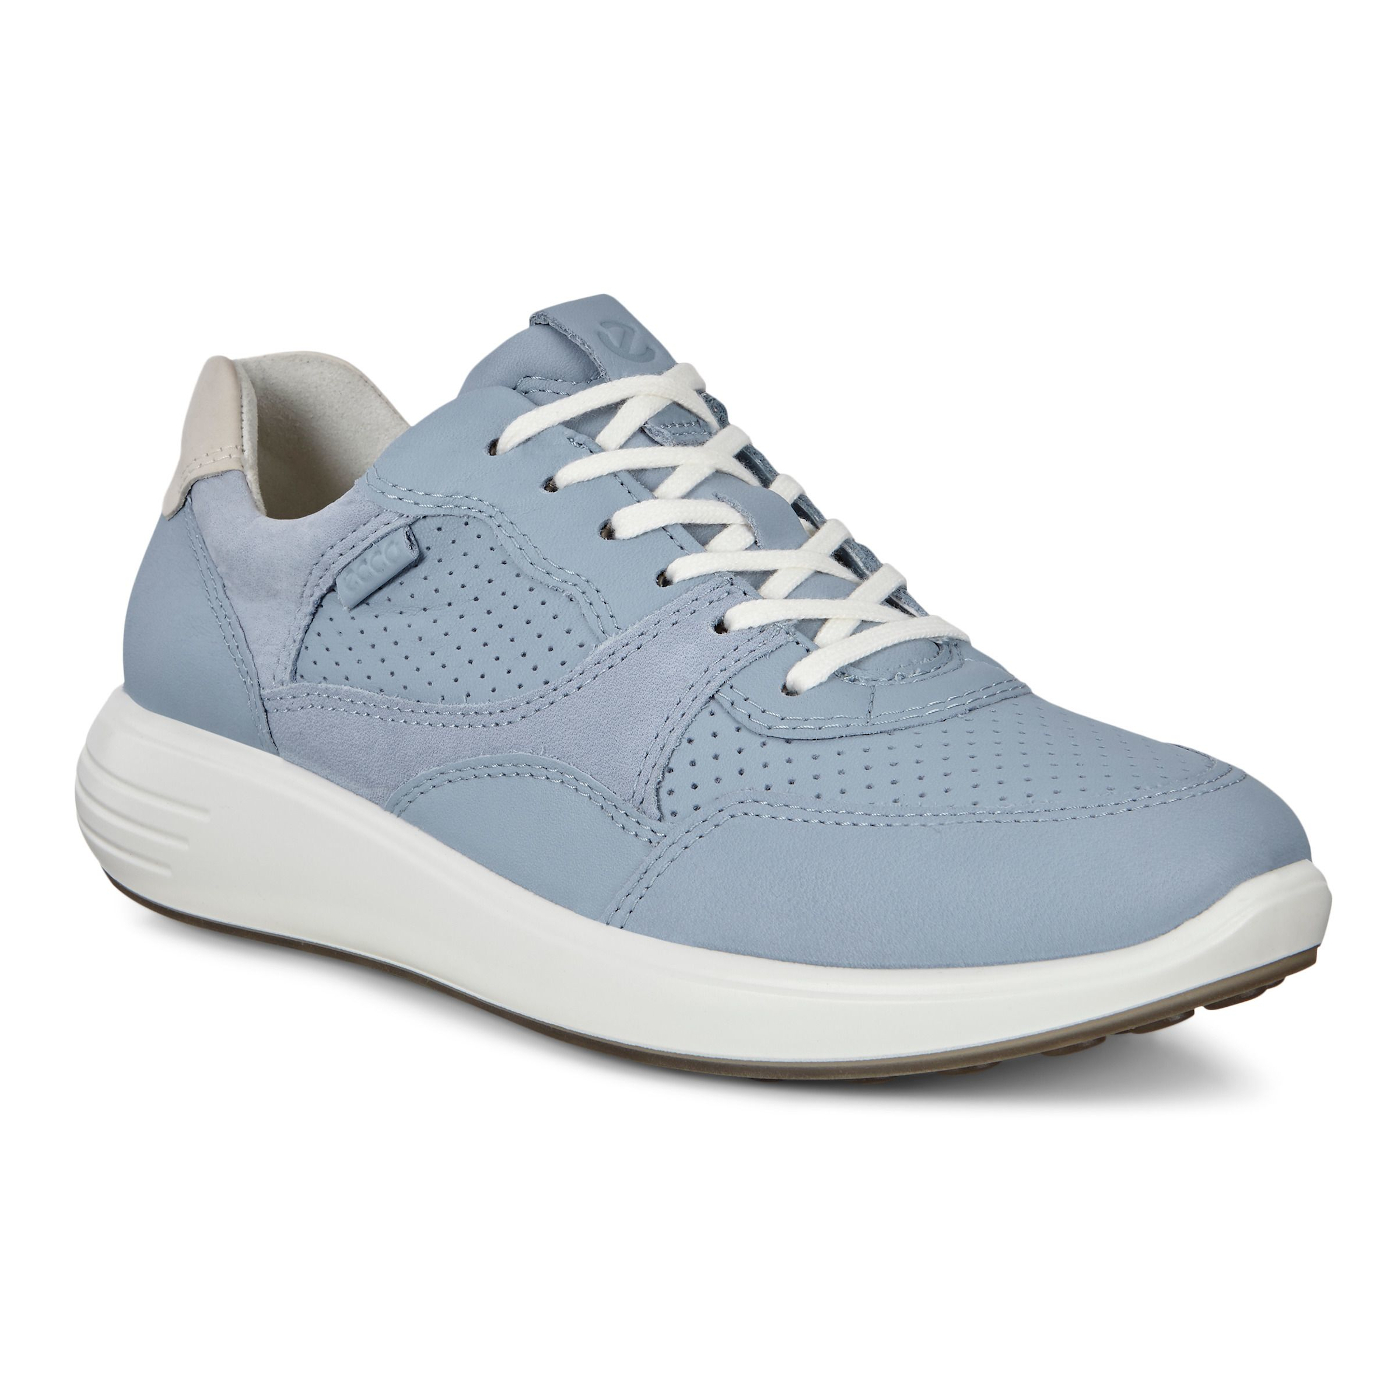 Ecco Ladies Soft 7 Runner - Dusty Blue/Shadow White